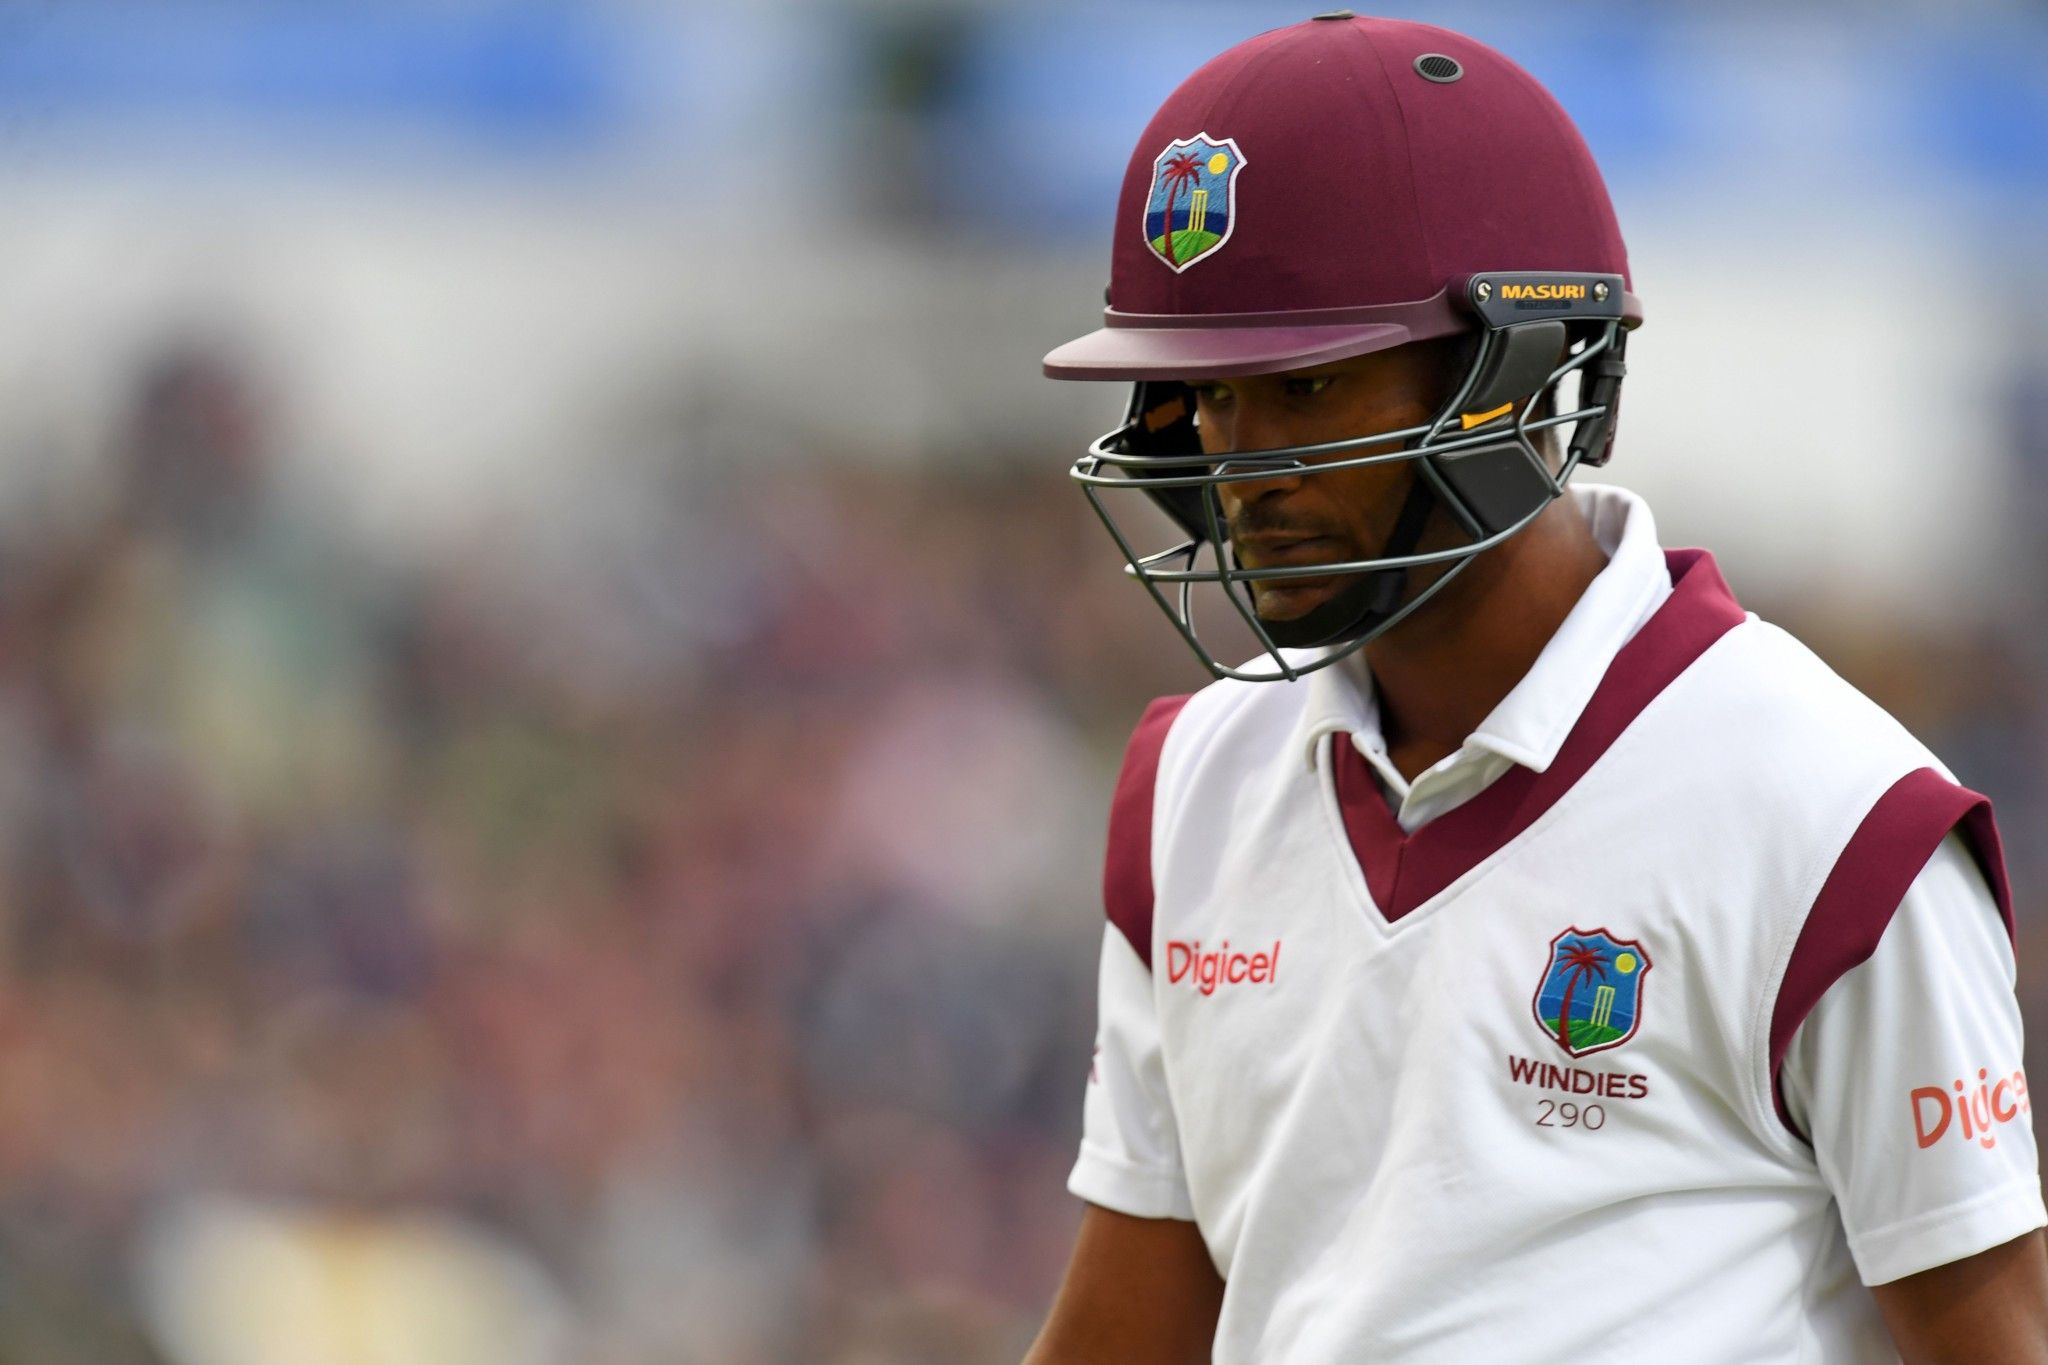 Kraigg Brathwaite took no wickets in the six overs he bowled against England in Birmingham ©Getty Images